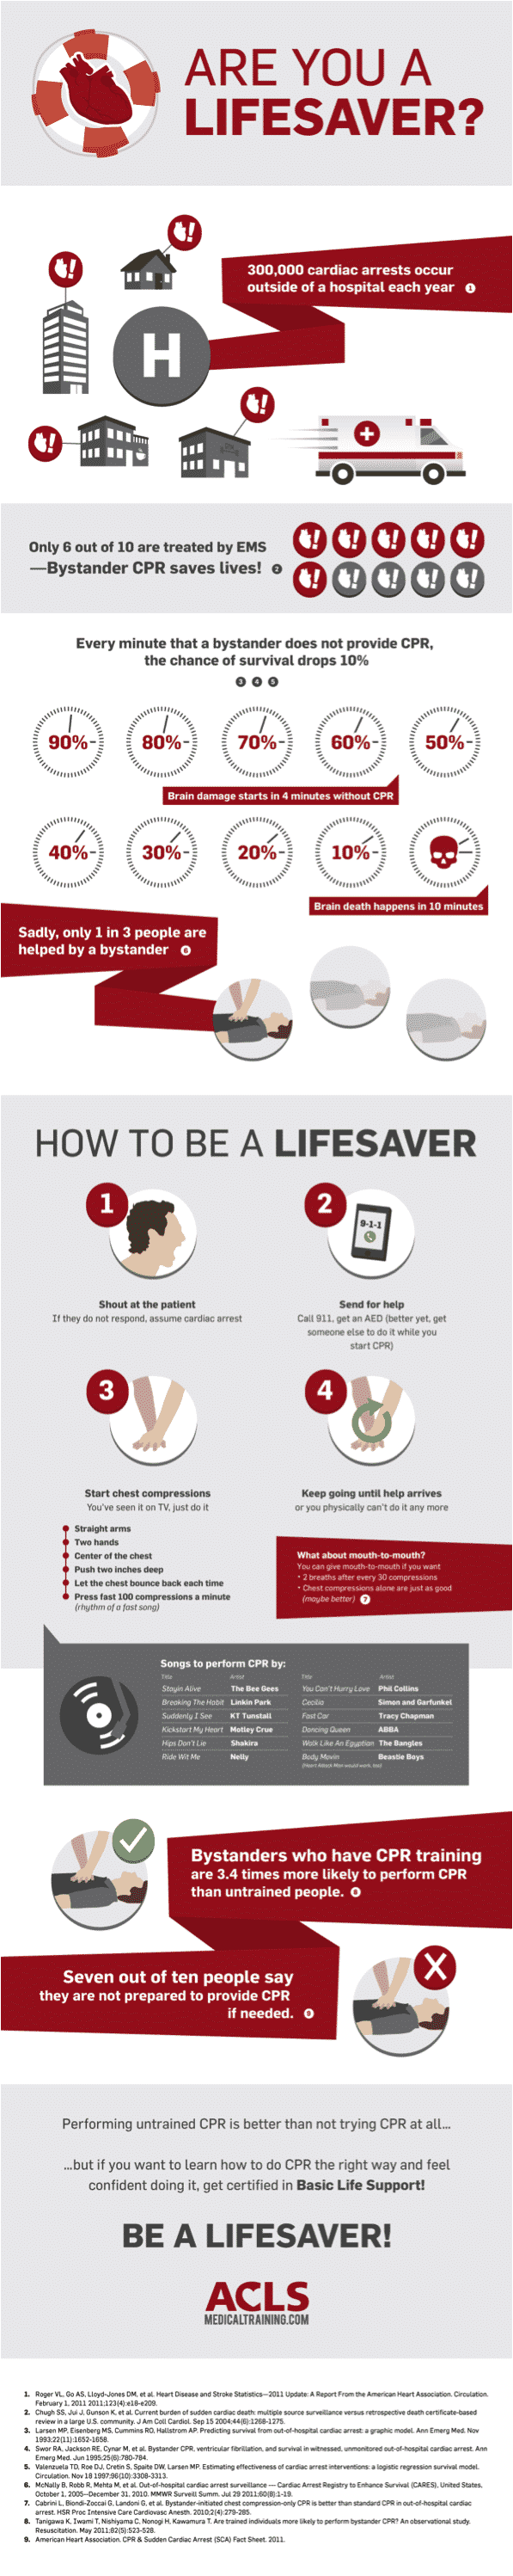 How To Be A Lifesaver: CPR Compression Only